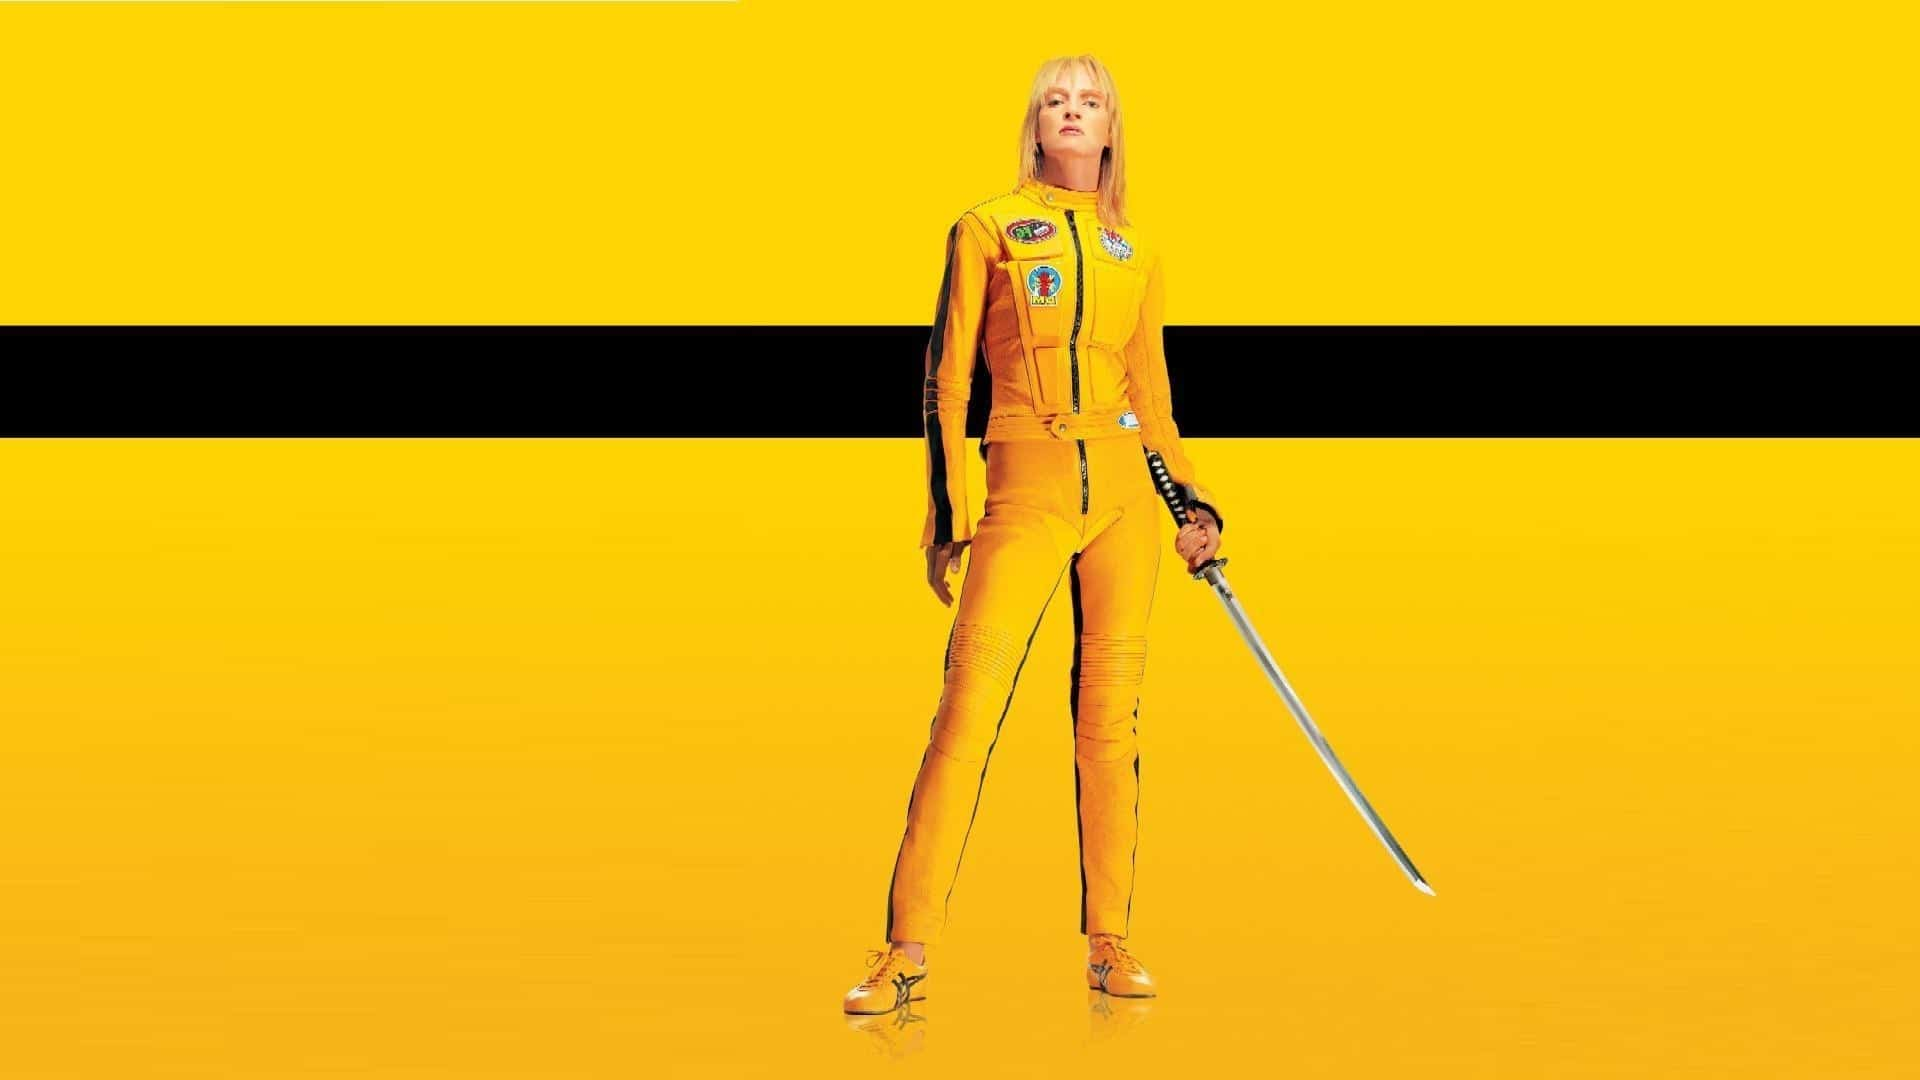 Yellow in cinema